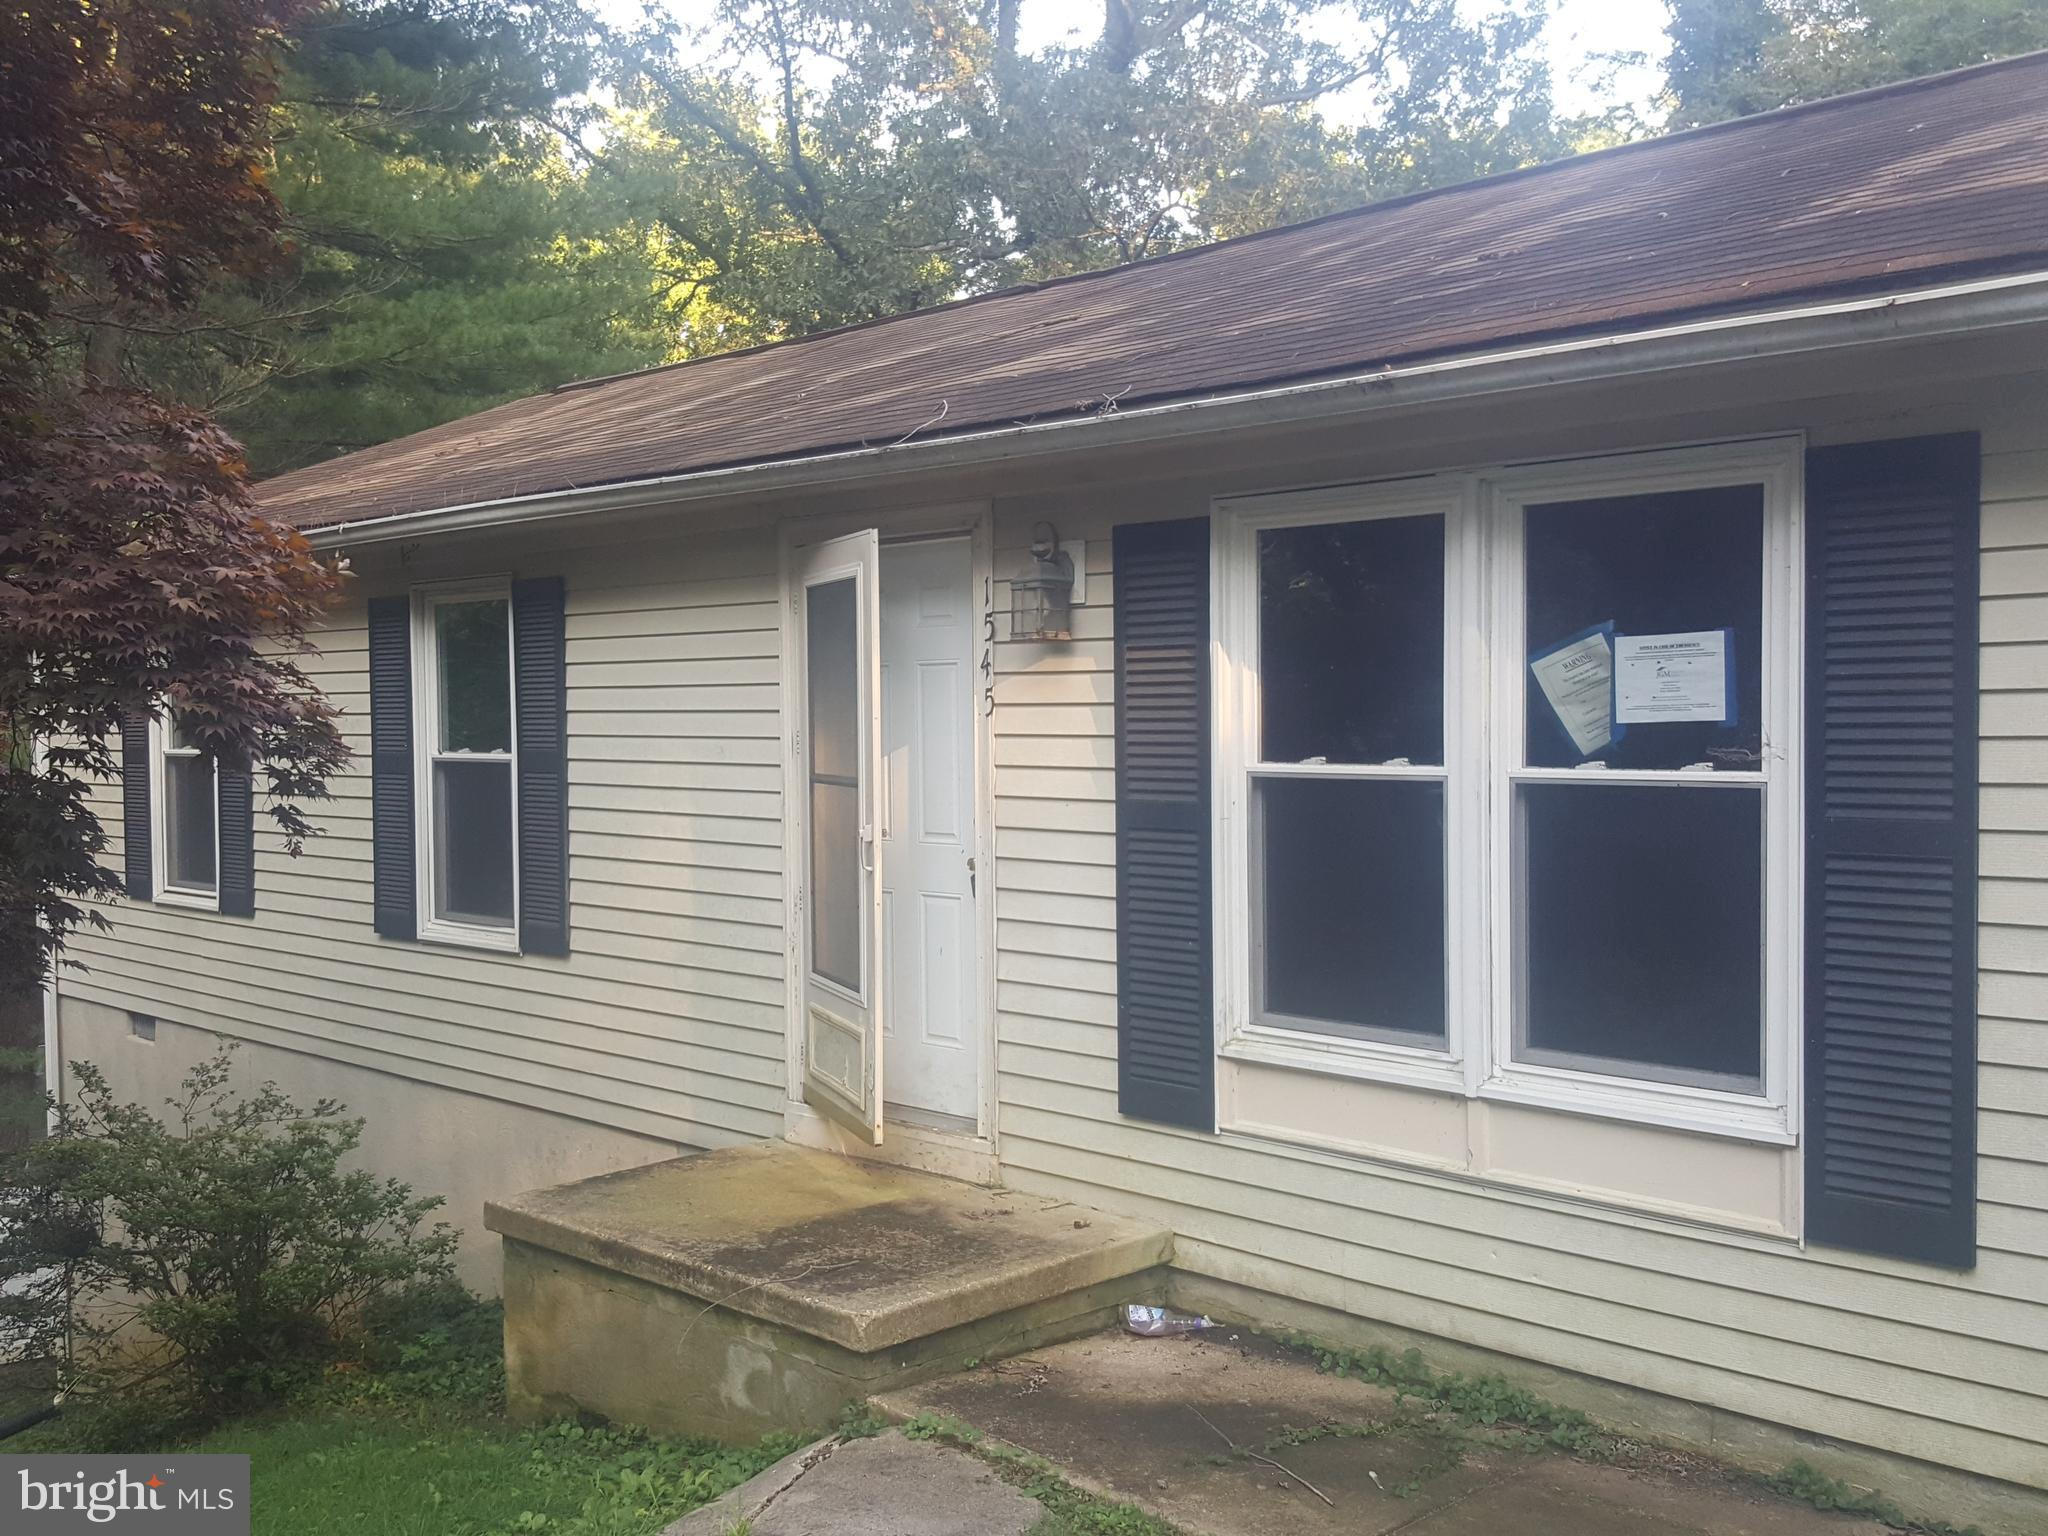 3 Bedroom 1 Bath Rambler is waiting for you to make it your home.  Inventory is low ... so hurry! Se